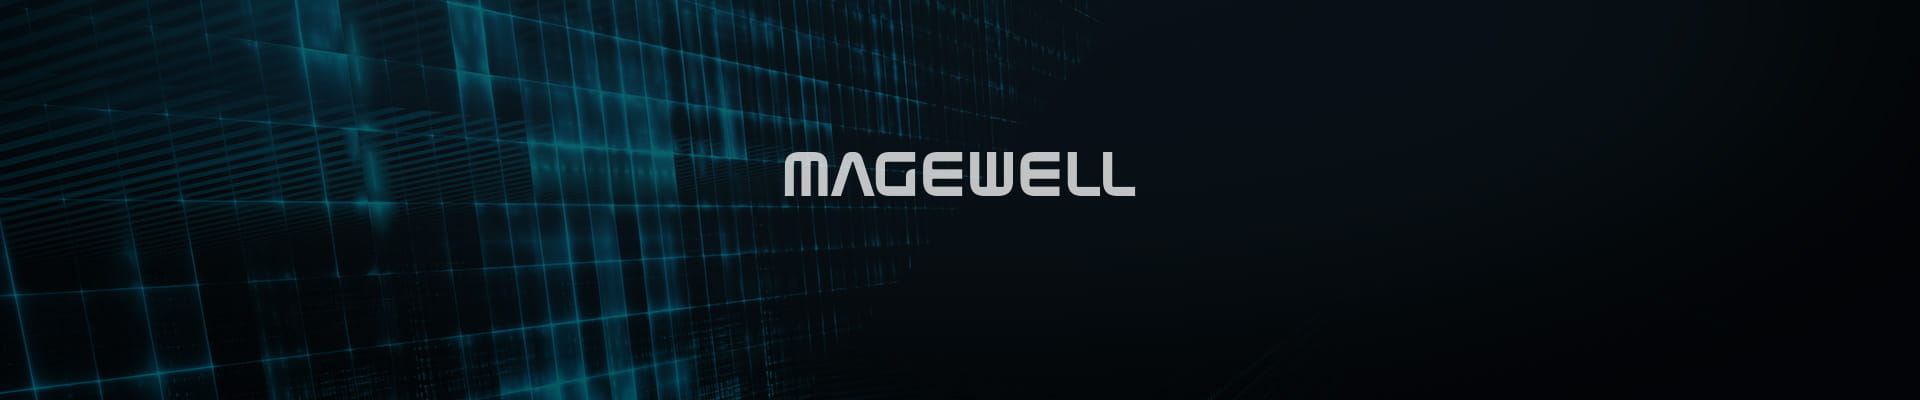 img-magewell-compatible-soft-icon-discover-video-streamsie